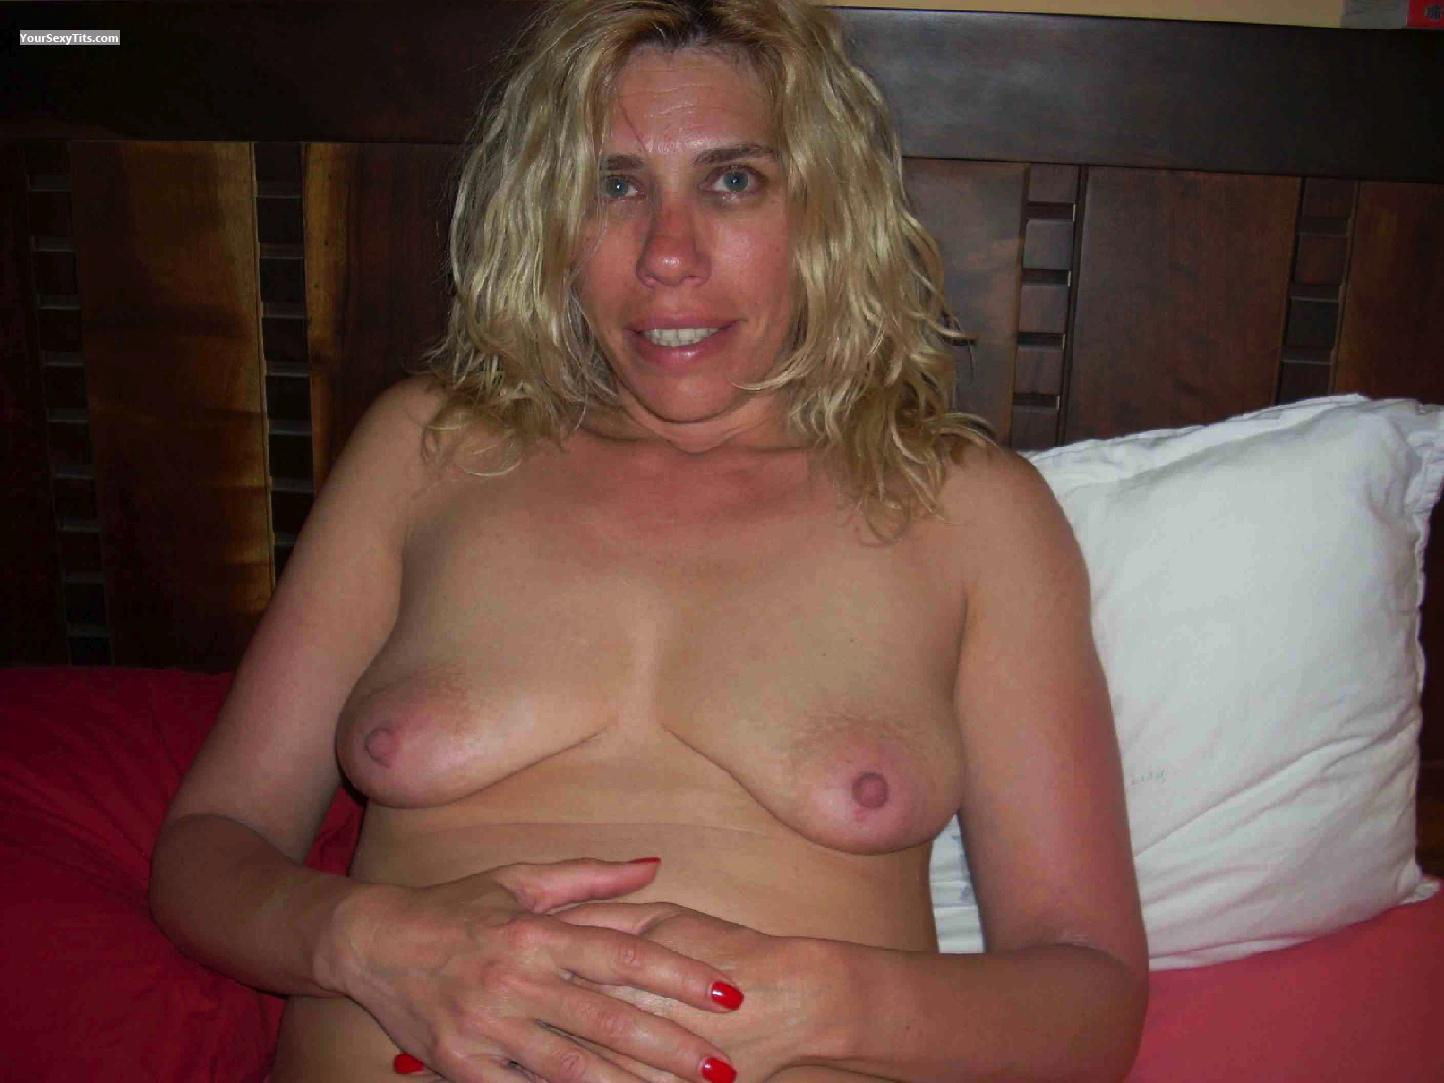 Small Tits Of My Wife Topless Sweet Wife